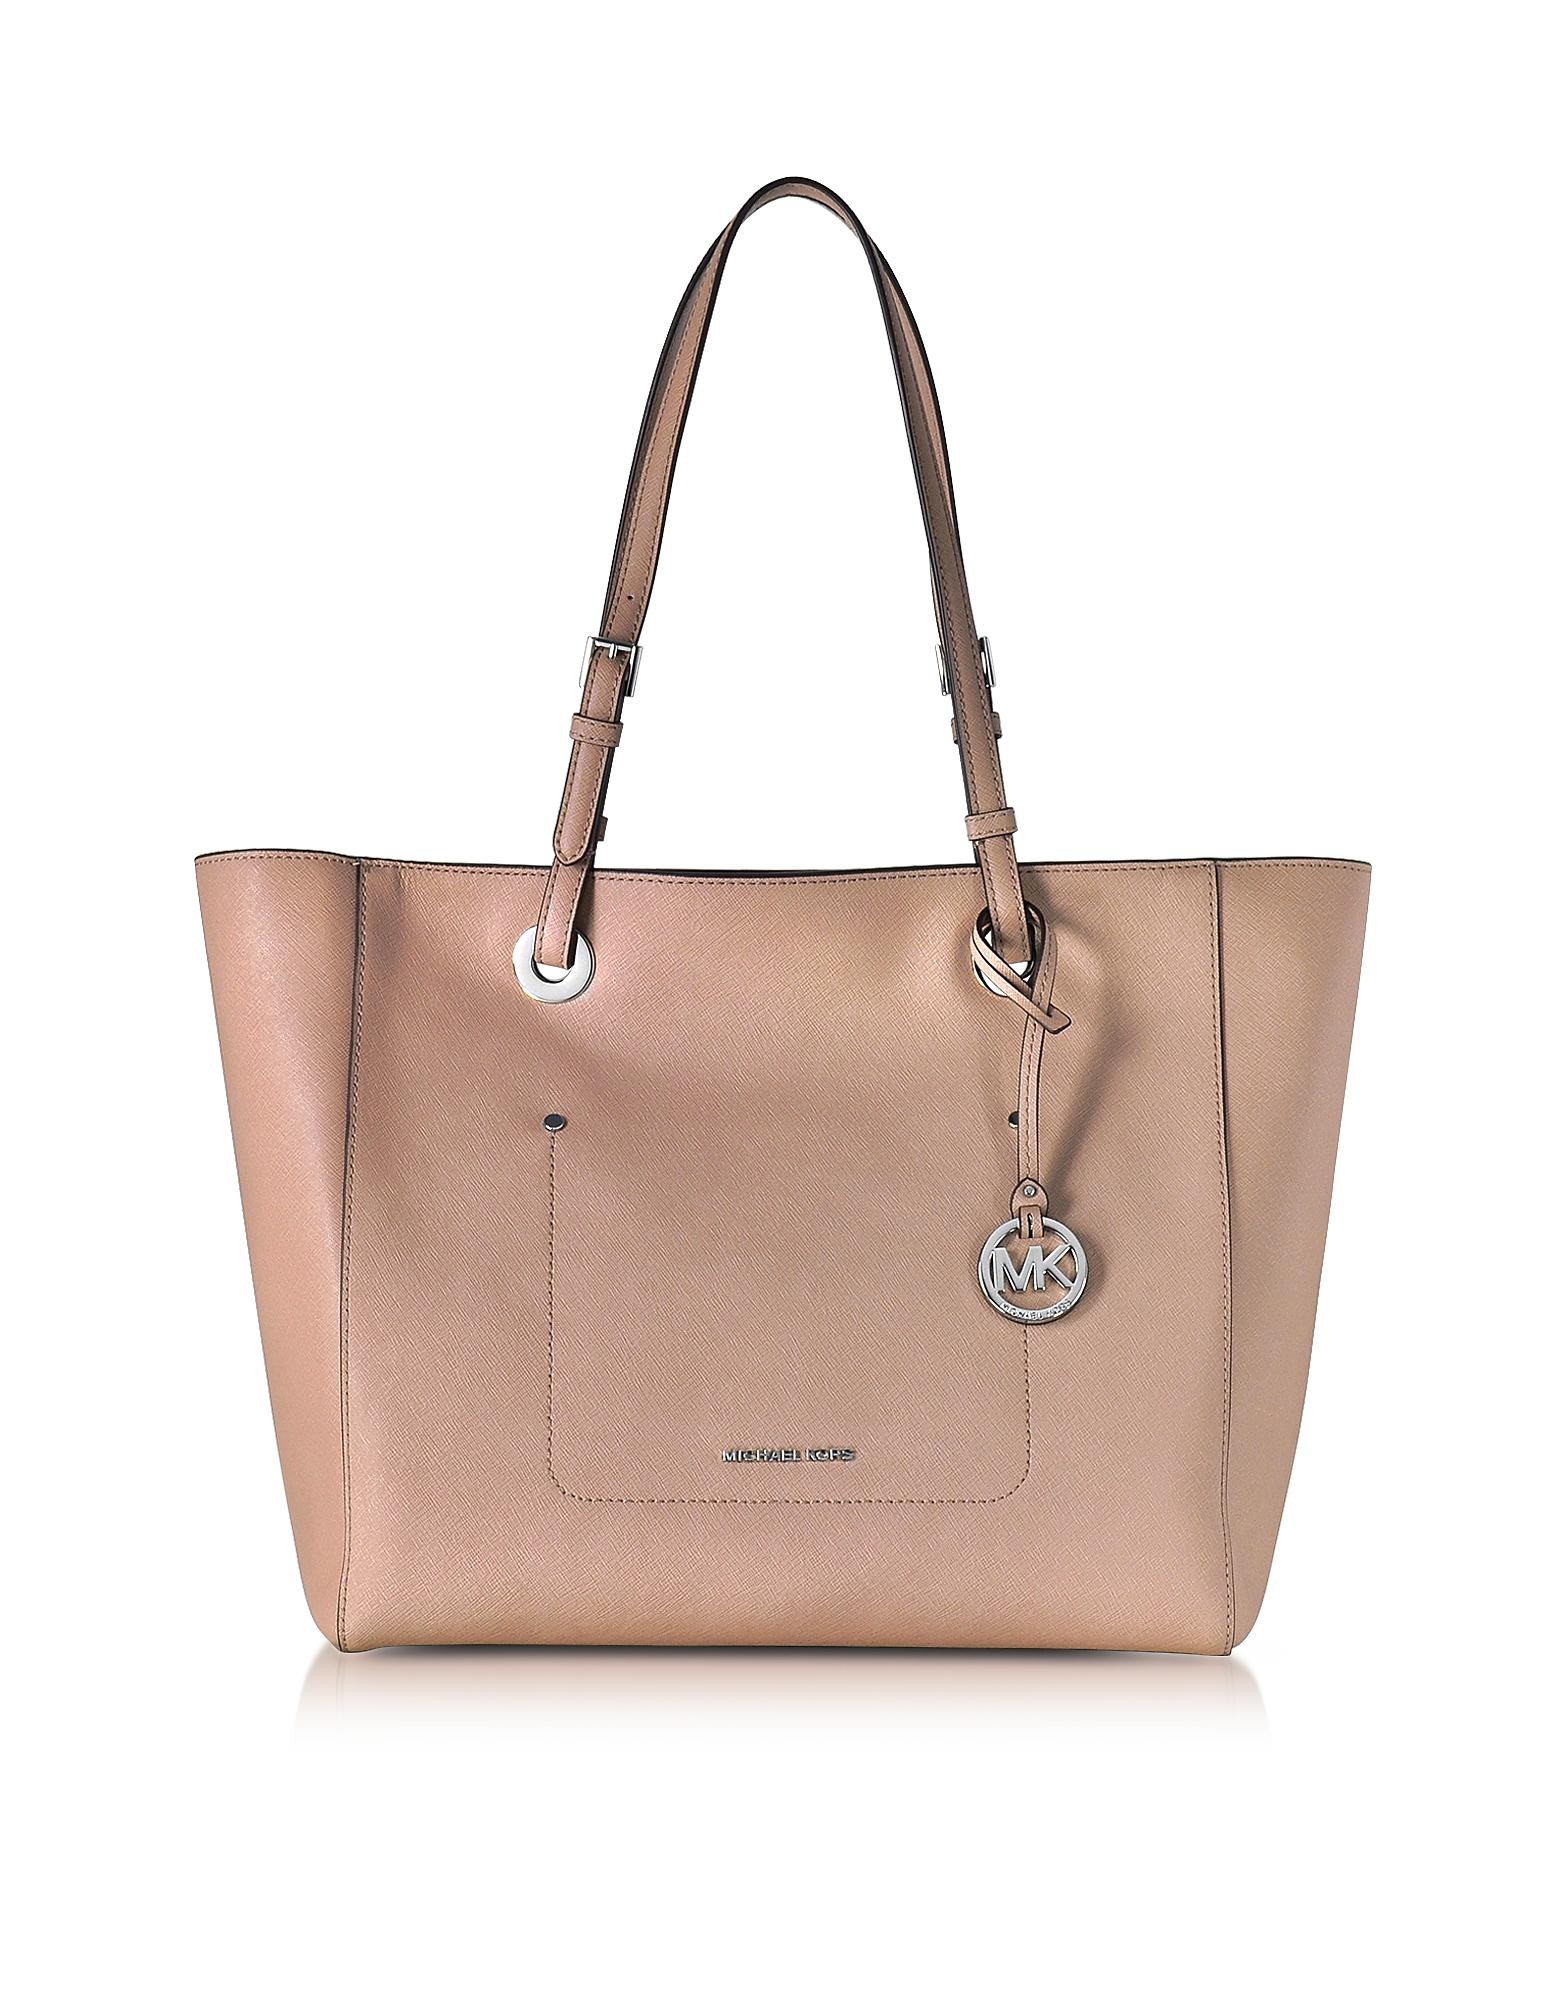 79d50204854b51 Walsh Large Saffiano Leather Tote Michael Kors | Stanford Center for ...